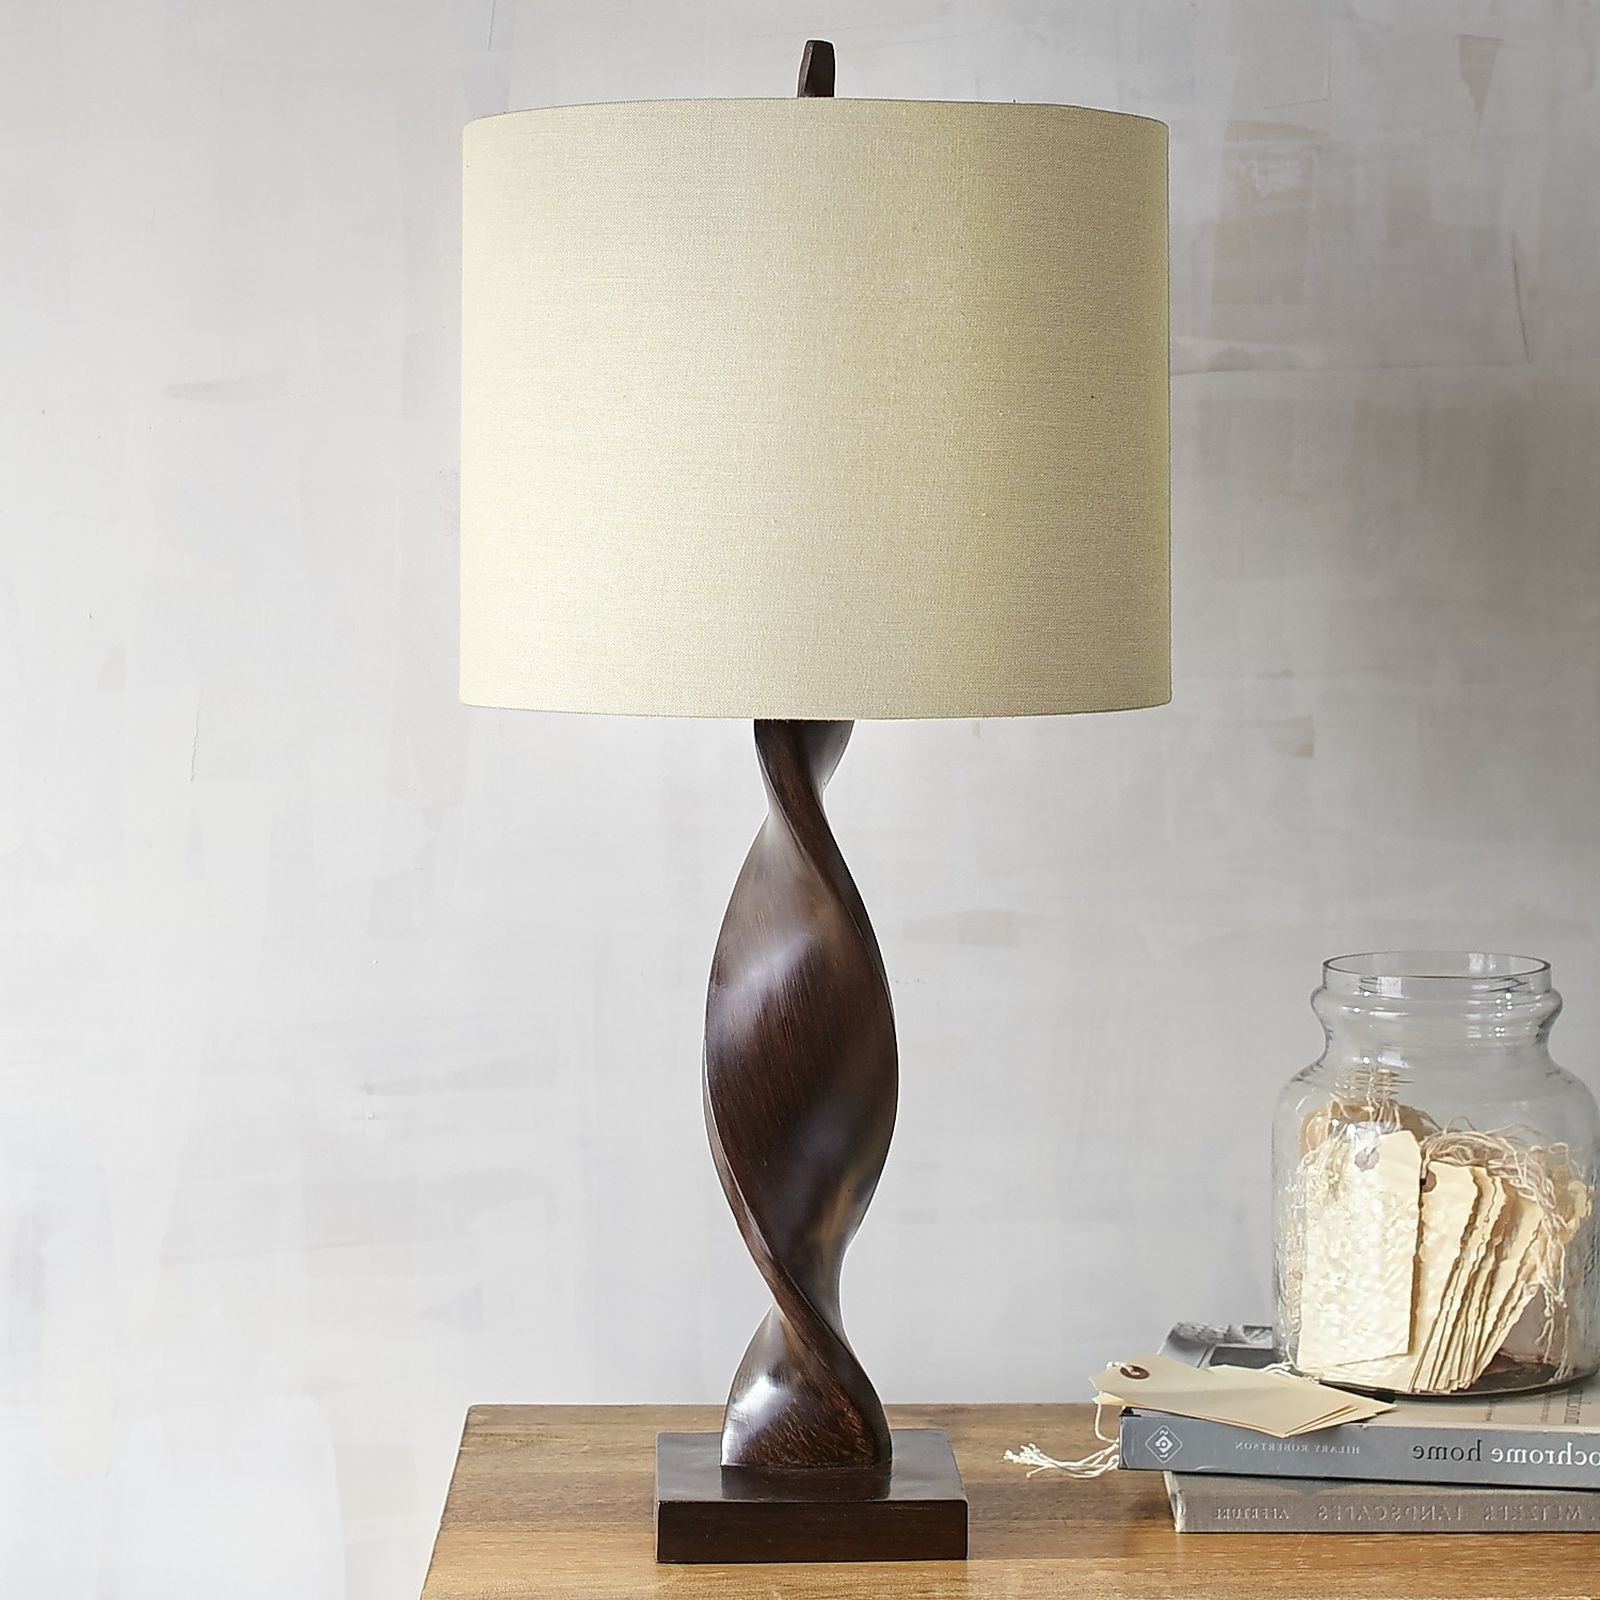 Most Recently Released Home Design: Elegant Table Lamps For Living Room Clear Glass Table Within Living Room Touch Table Lamps (View 13 of 20)